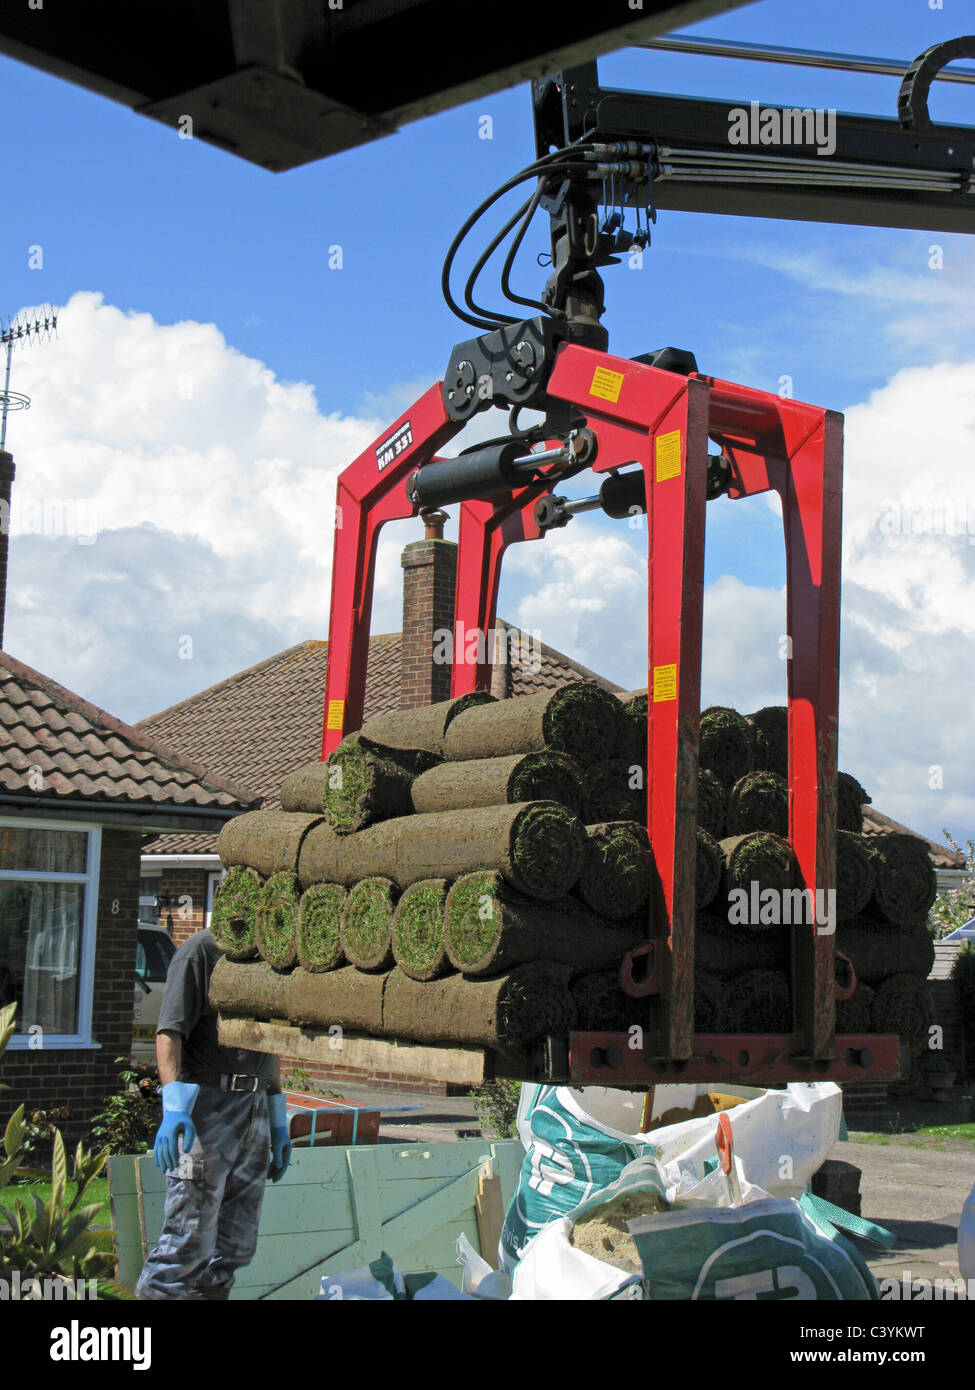 lorry delivering rolls of turf using the grabber - Stock Image